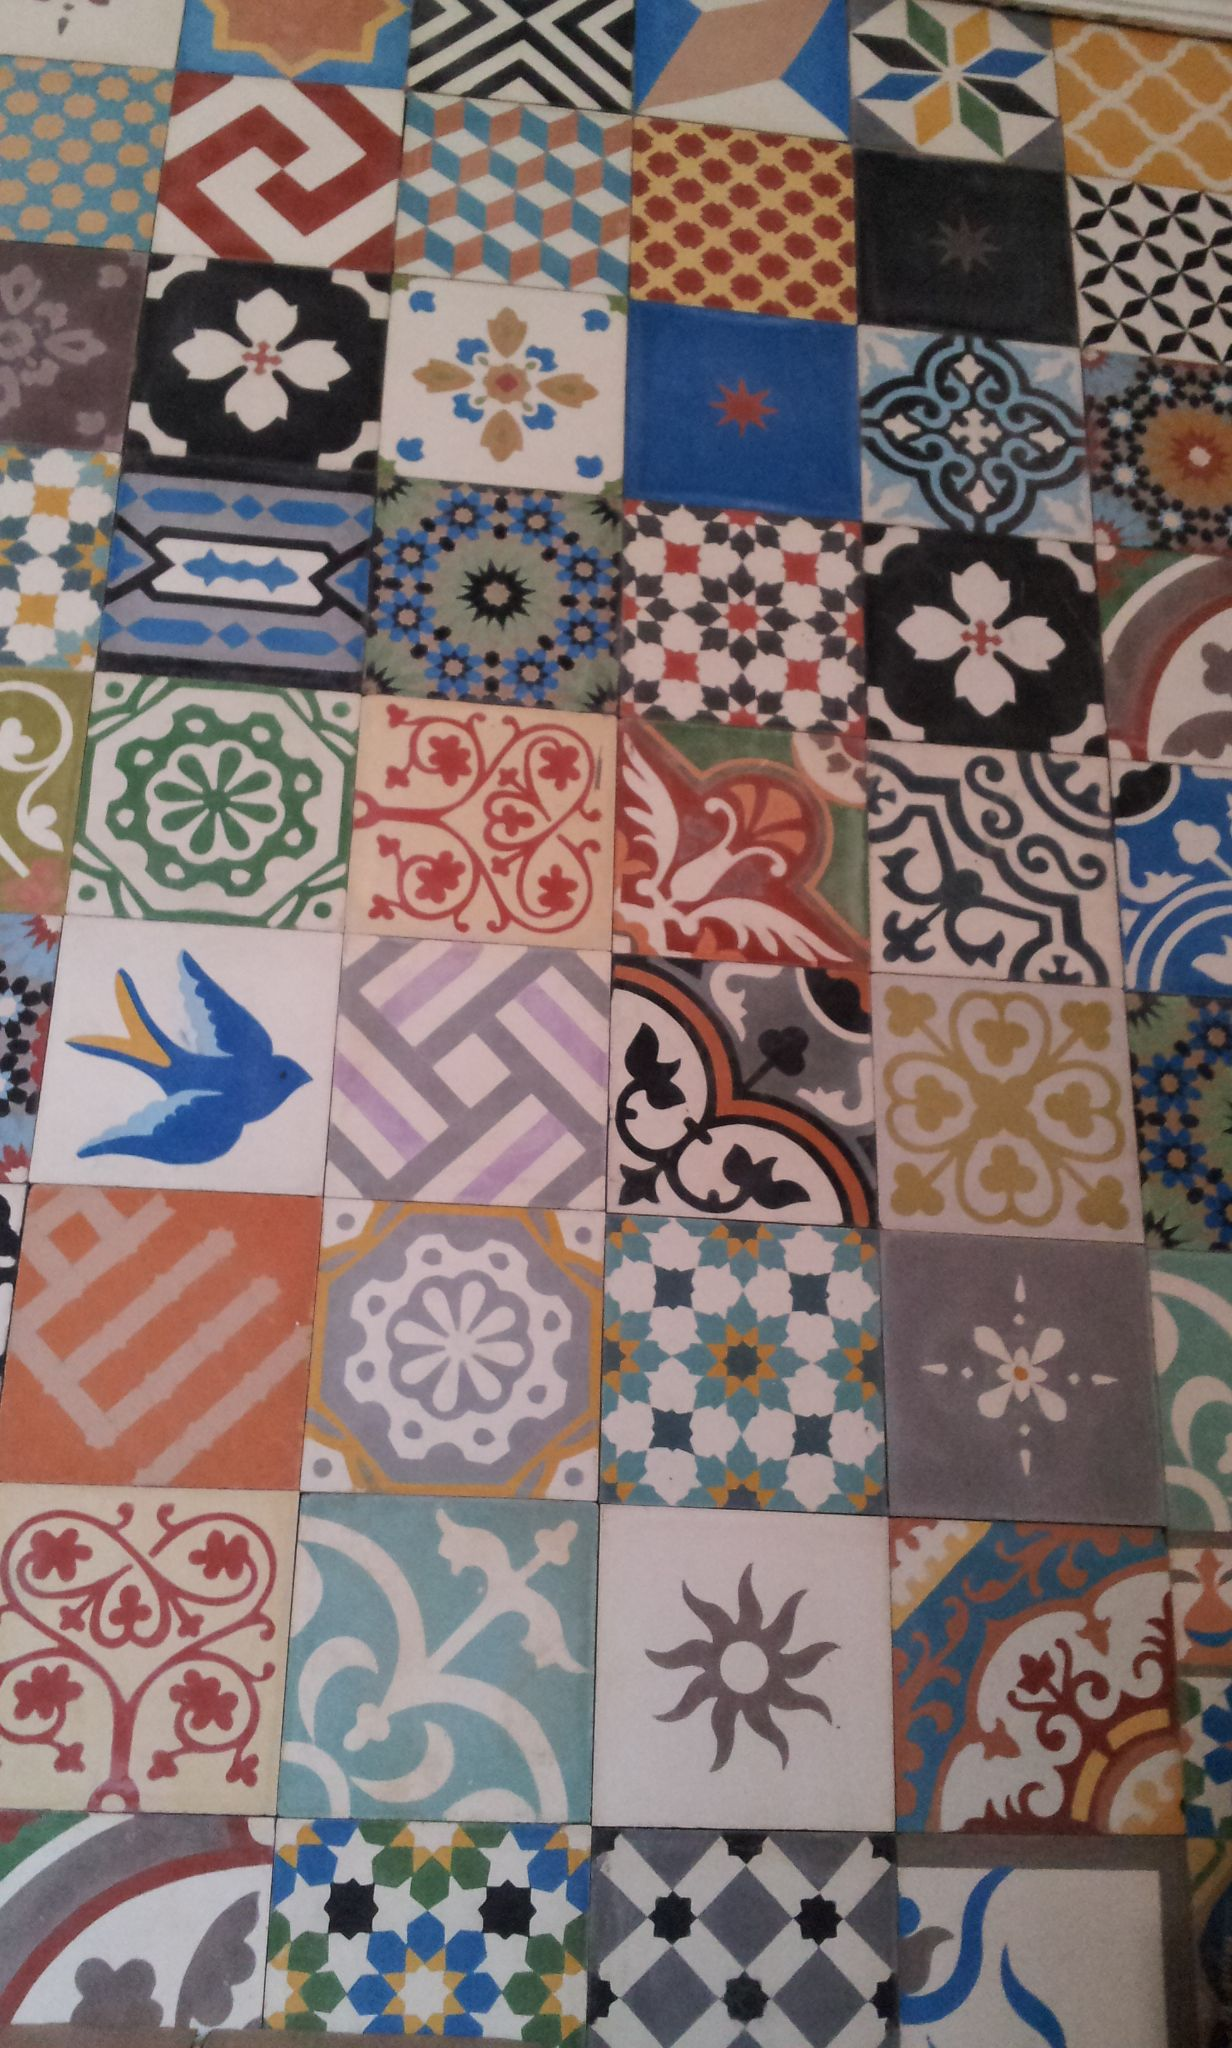 Beautiful moroccan tiles handmade tiles can be colour coordinated ibiza dan aan de muur beautiful moroccan tiles handmade tiles can be colour coordinated and customized re shape texture pattern etc by ceramic design dailygadgetfo Images